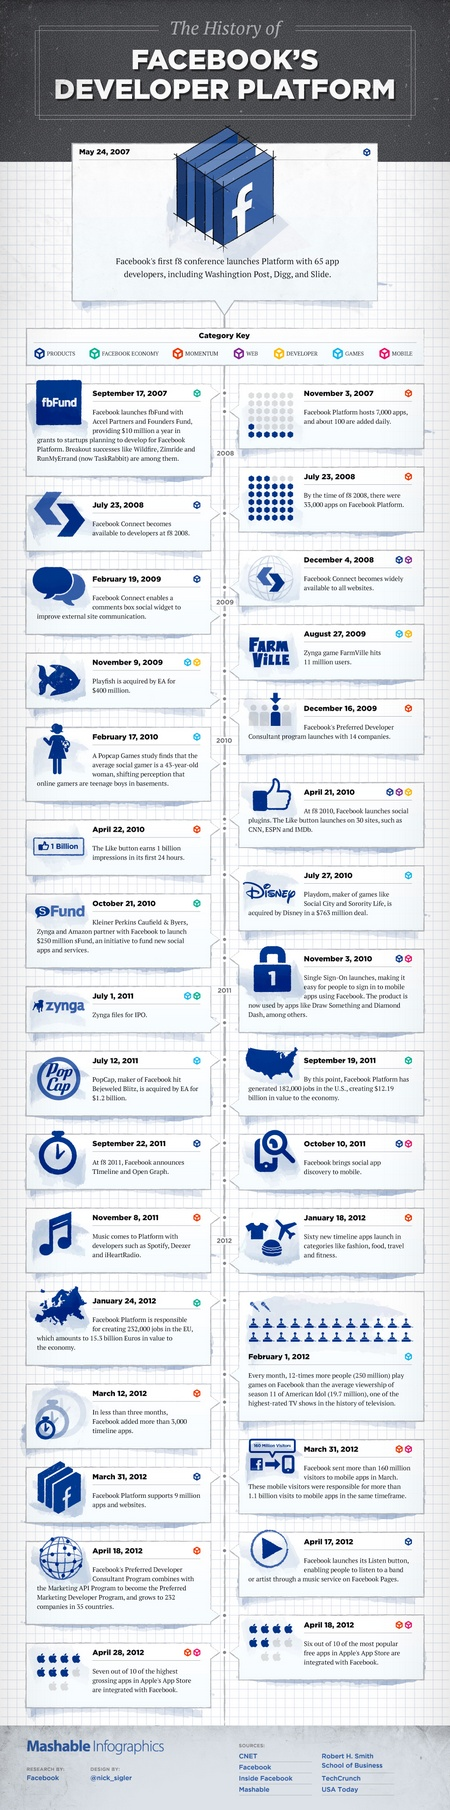 The History of #Facebook's Developer Platform